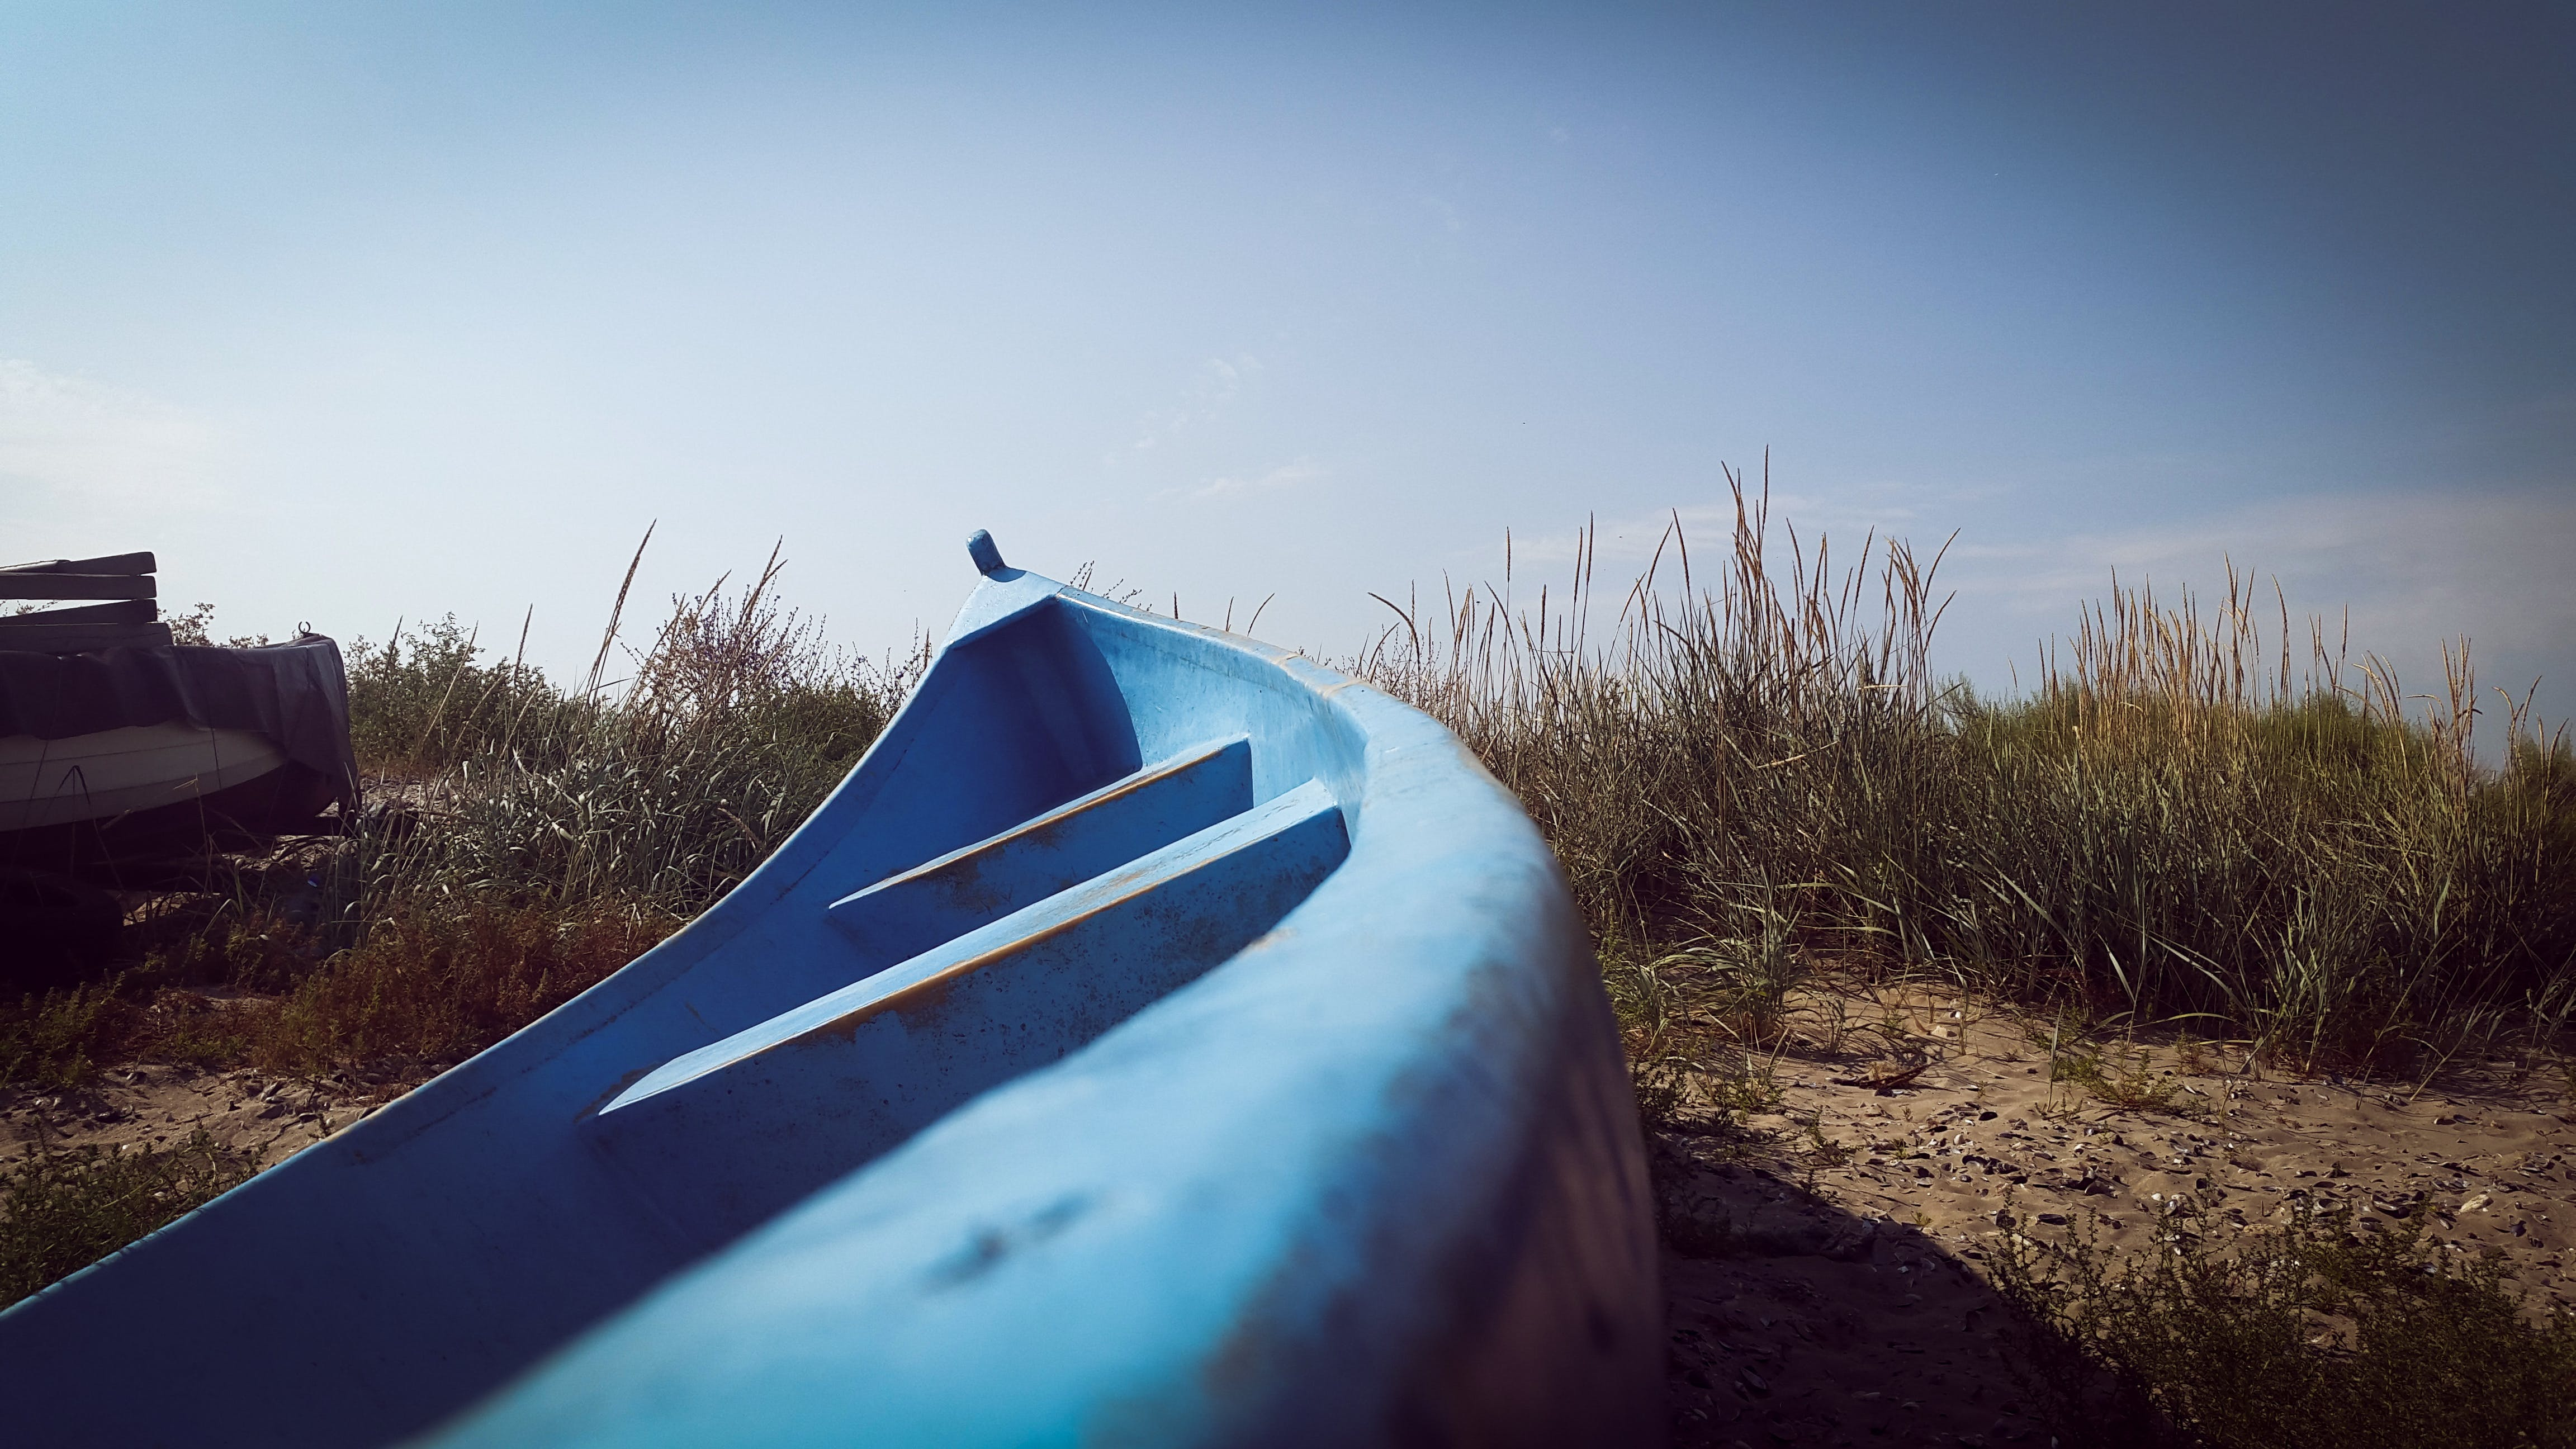 Free stock photo of blue, boat, mobilechallenge, outdoorchallenge